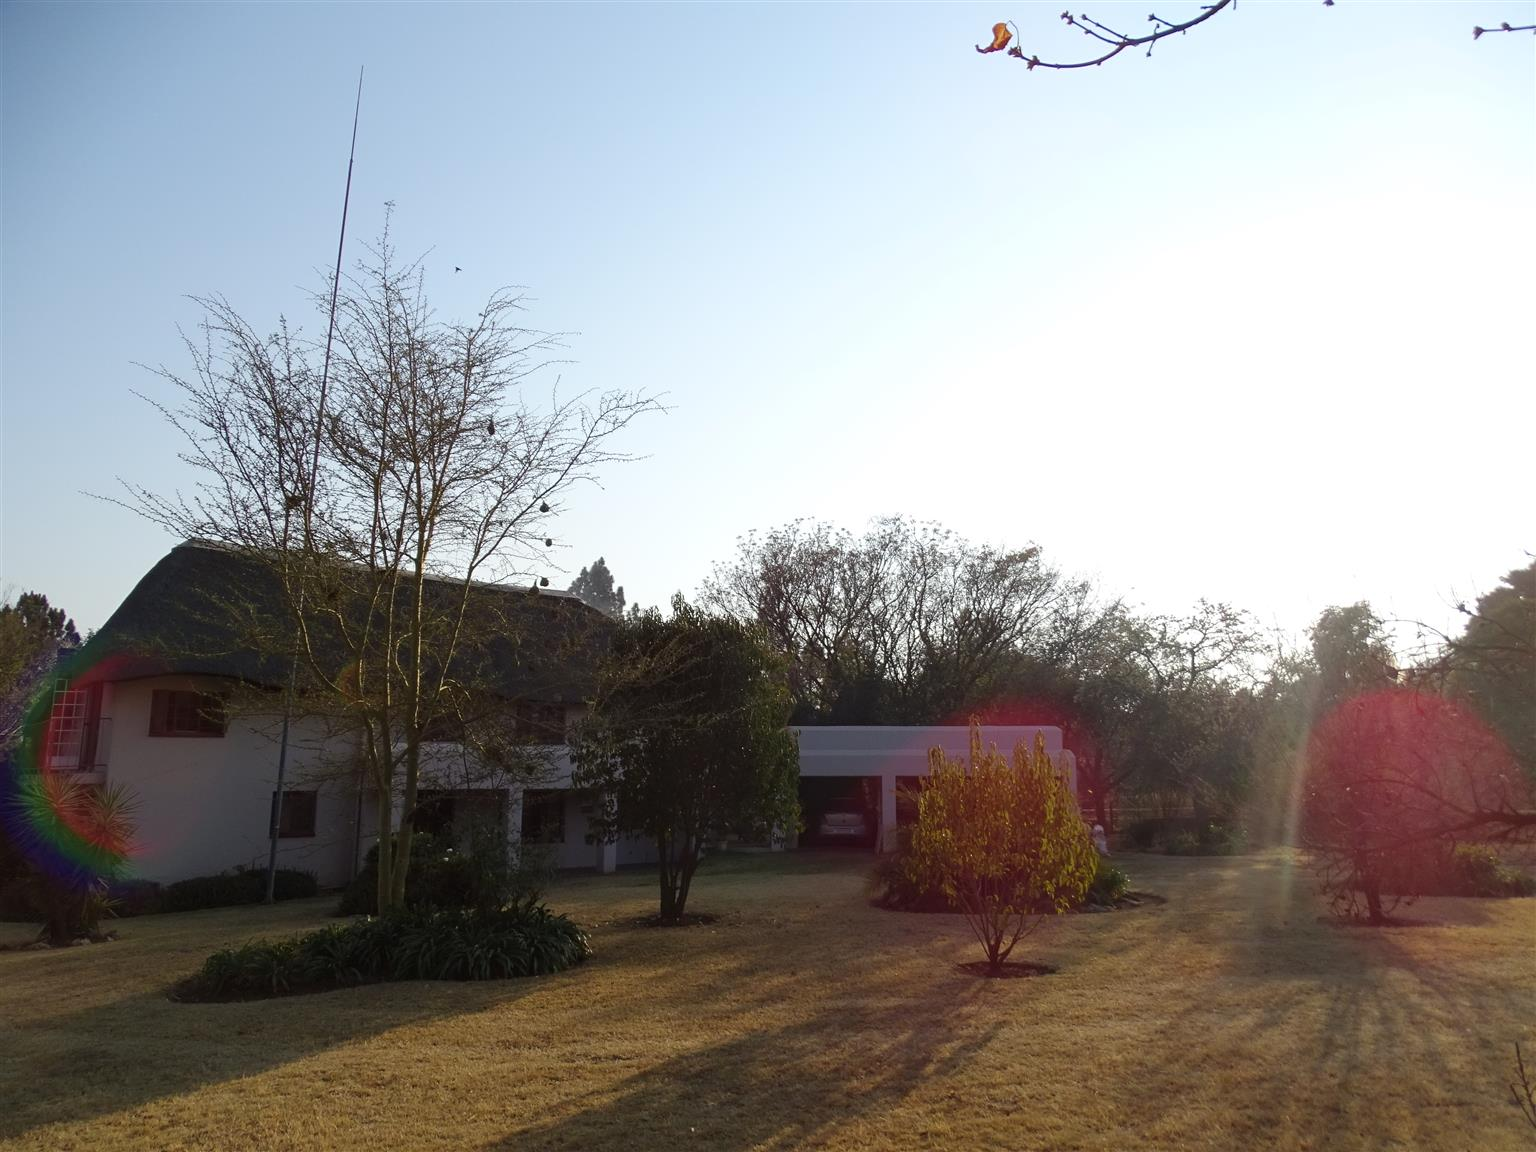 4 Bedroom house - Mnandi on 1 Hectare of land.